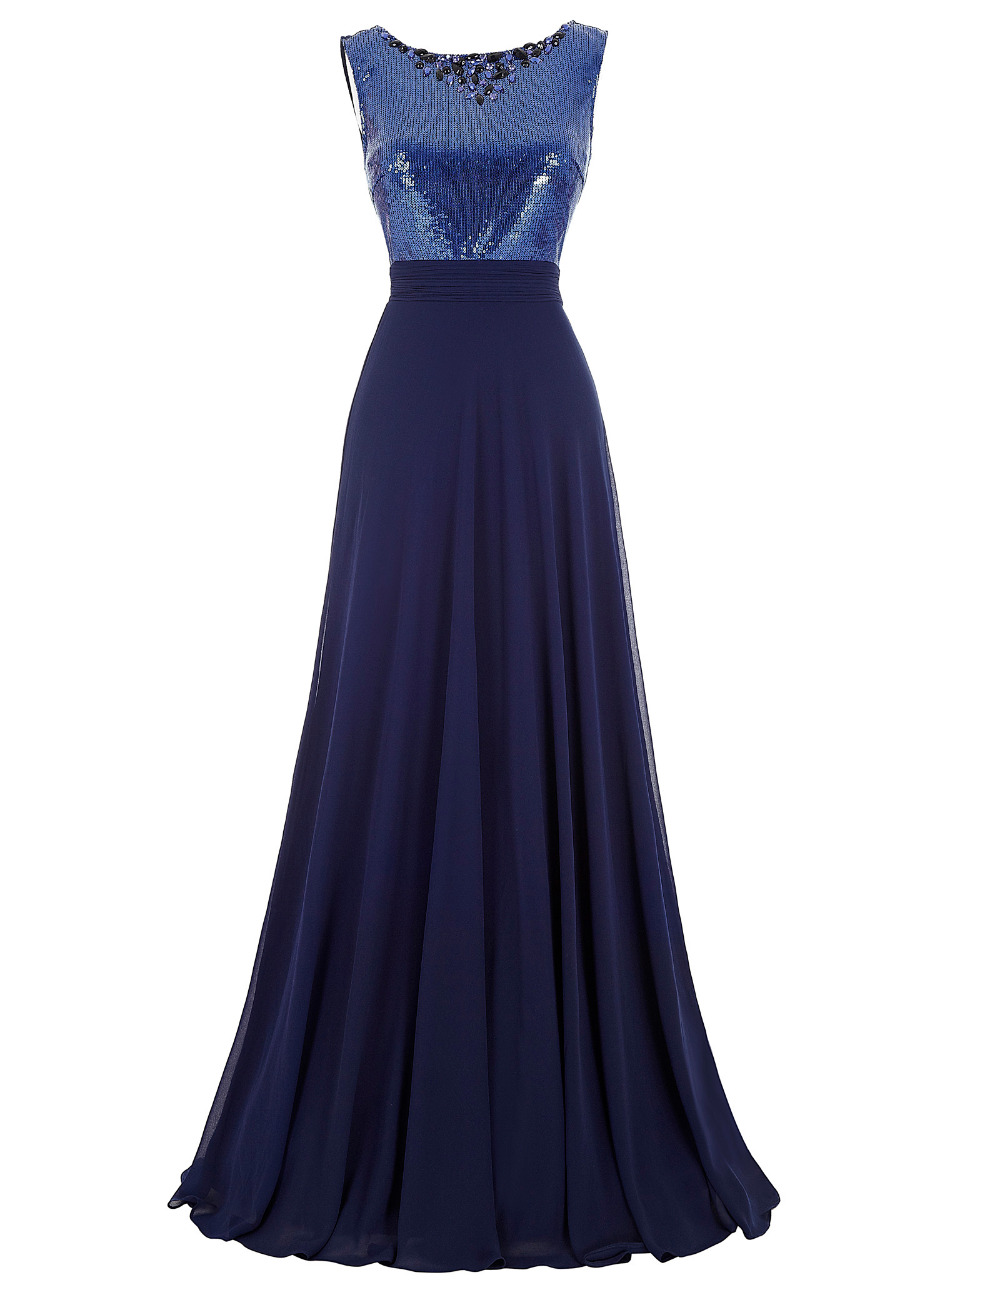 Where To Buy Cheap Bridesmaid Dresses In Singapore 93